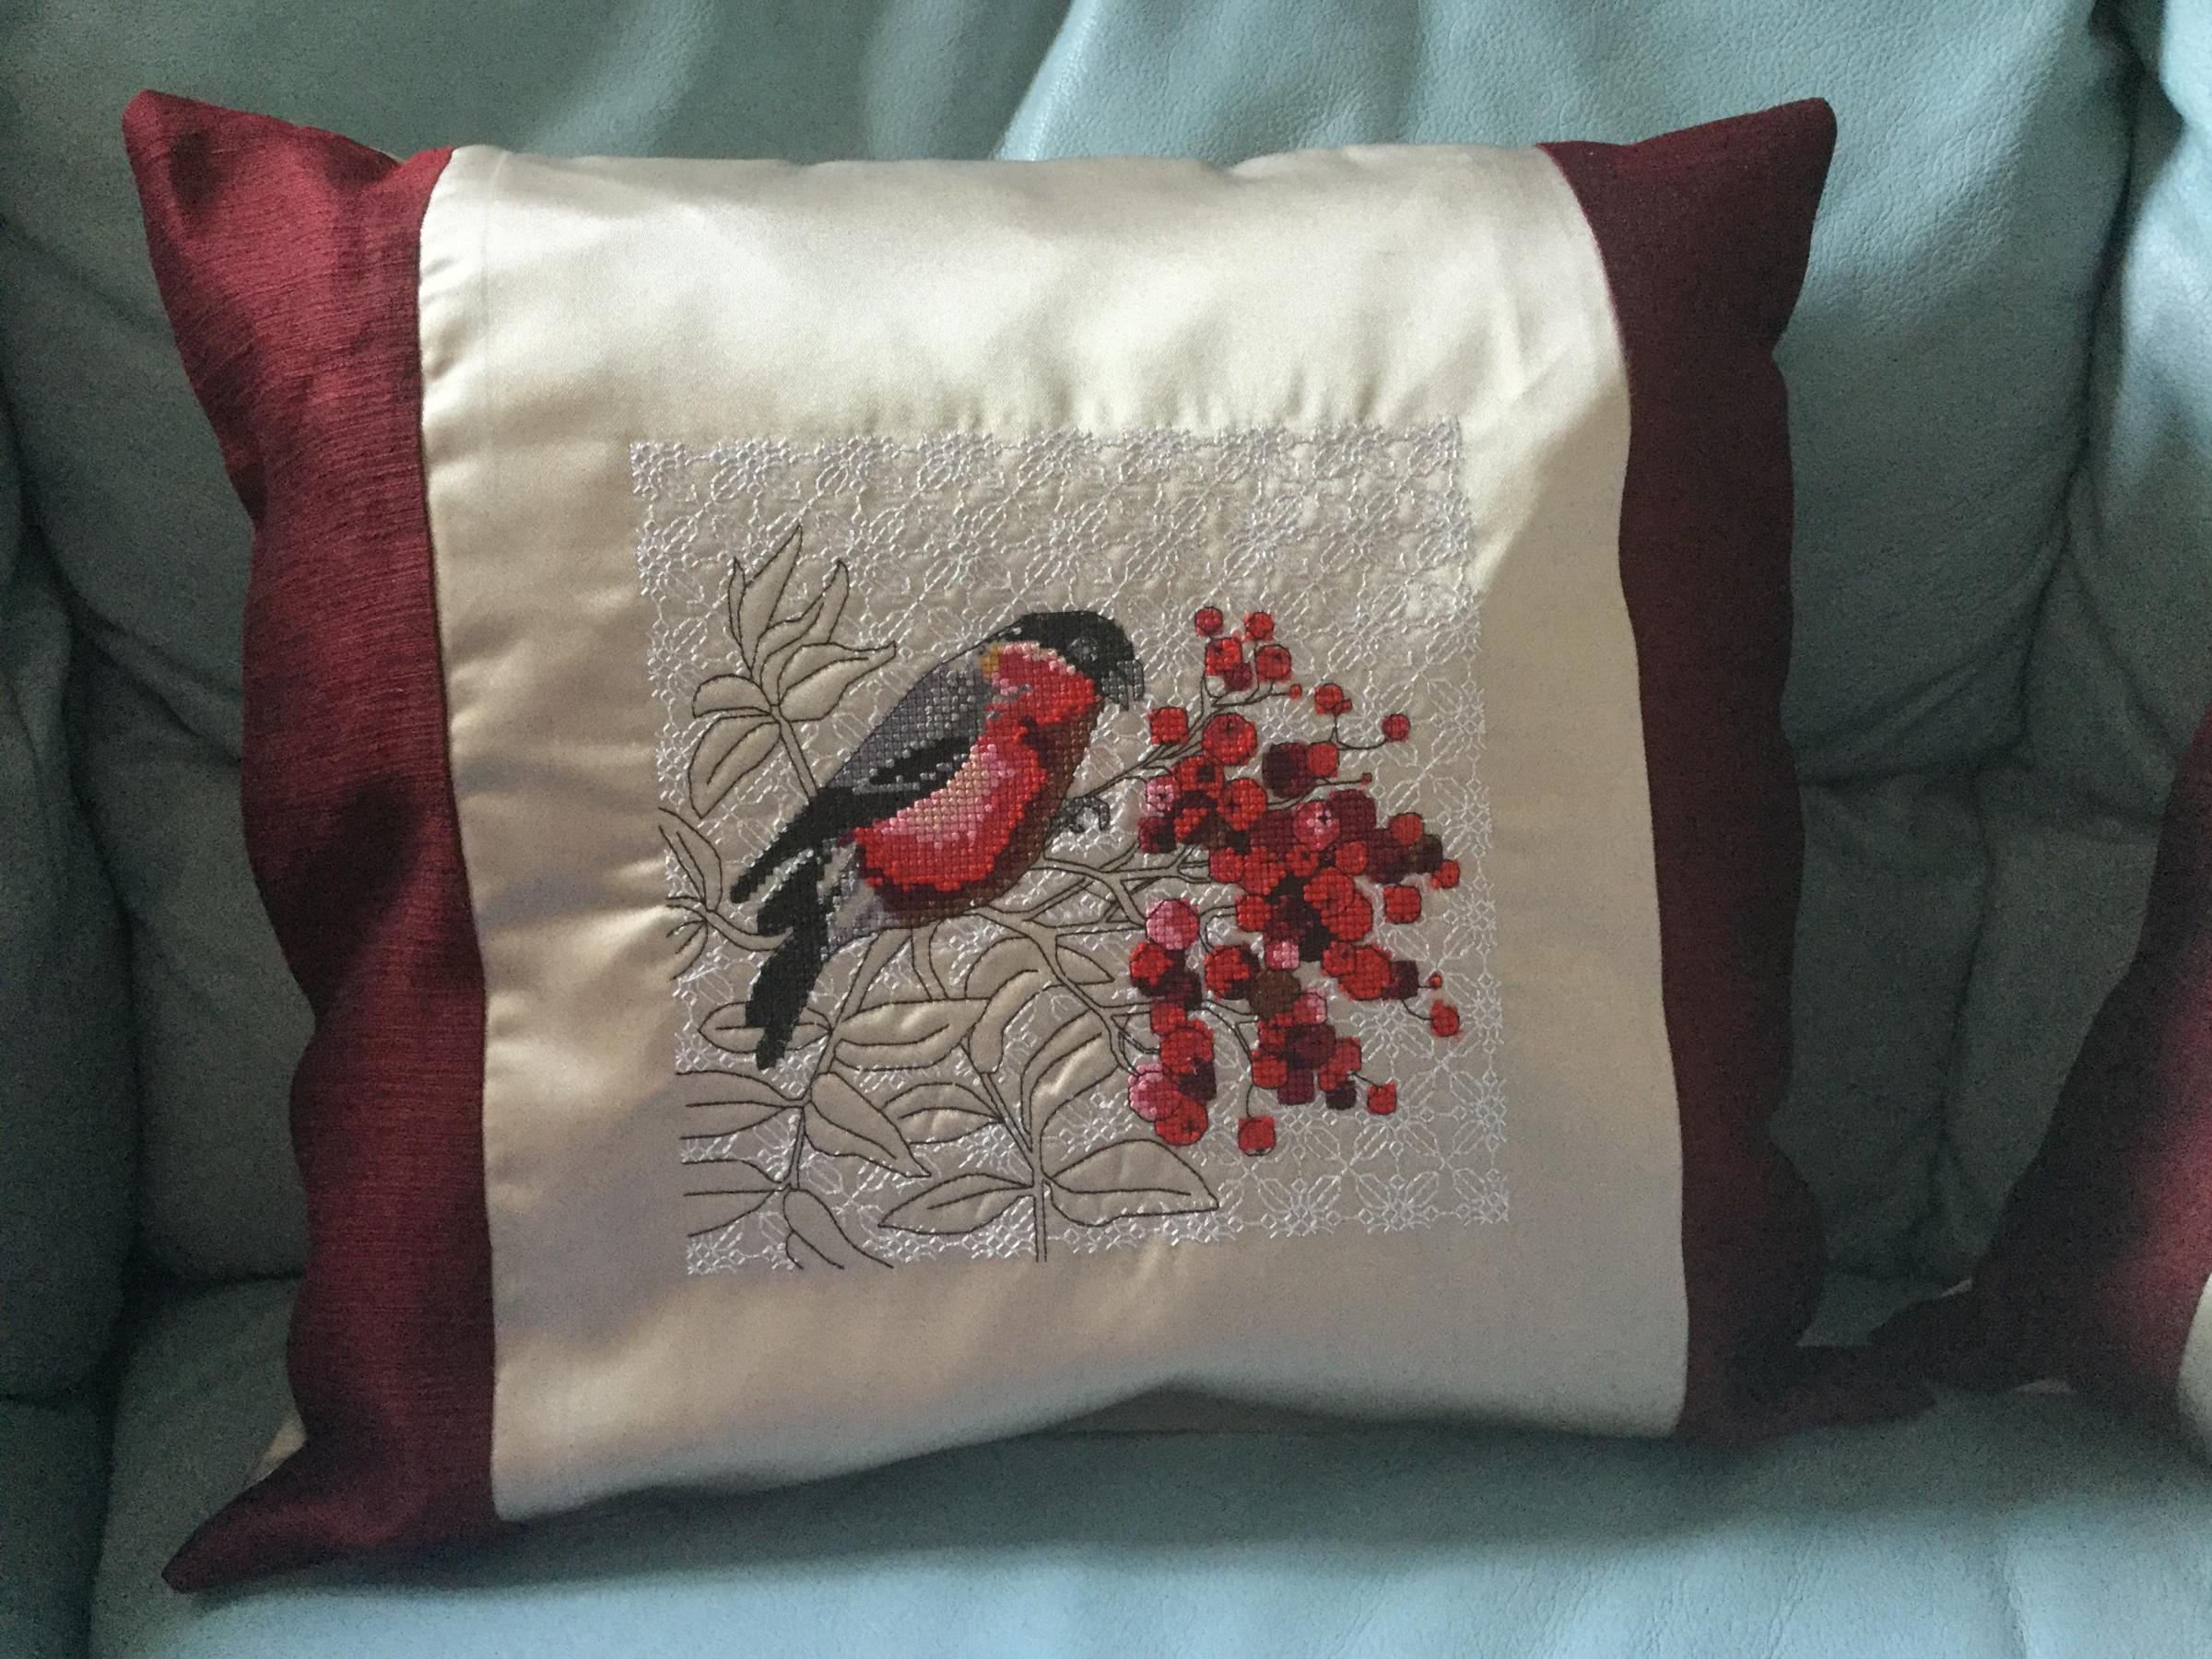 Embroidered cushion with bullfinch cross stitch design